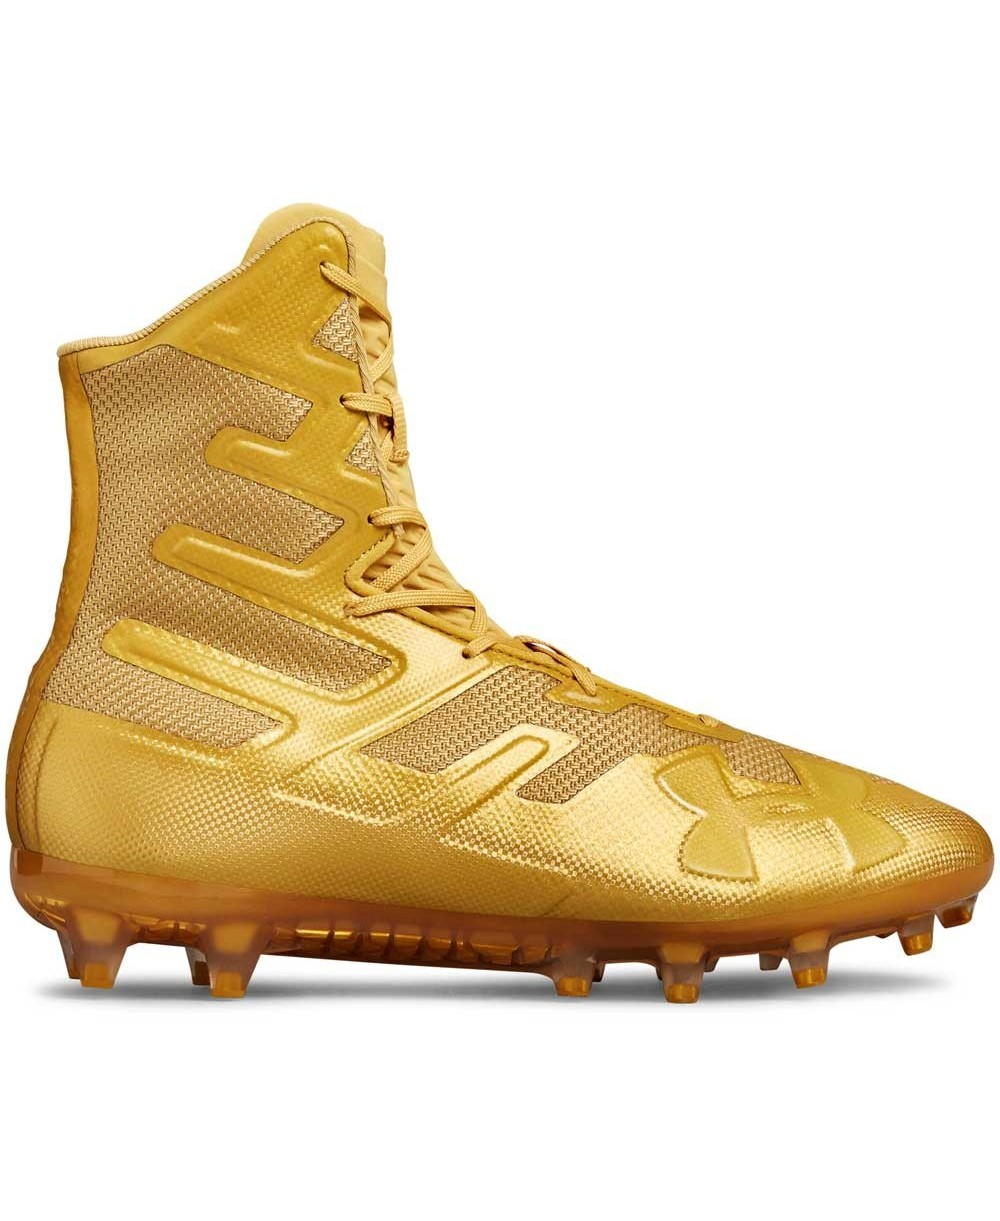 73c00dc2b8f Under Armour Men's Highlight MC American Football Cleats Metallic Gold